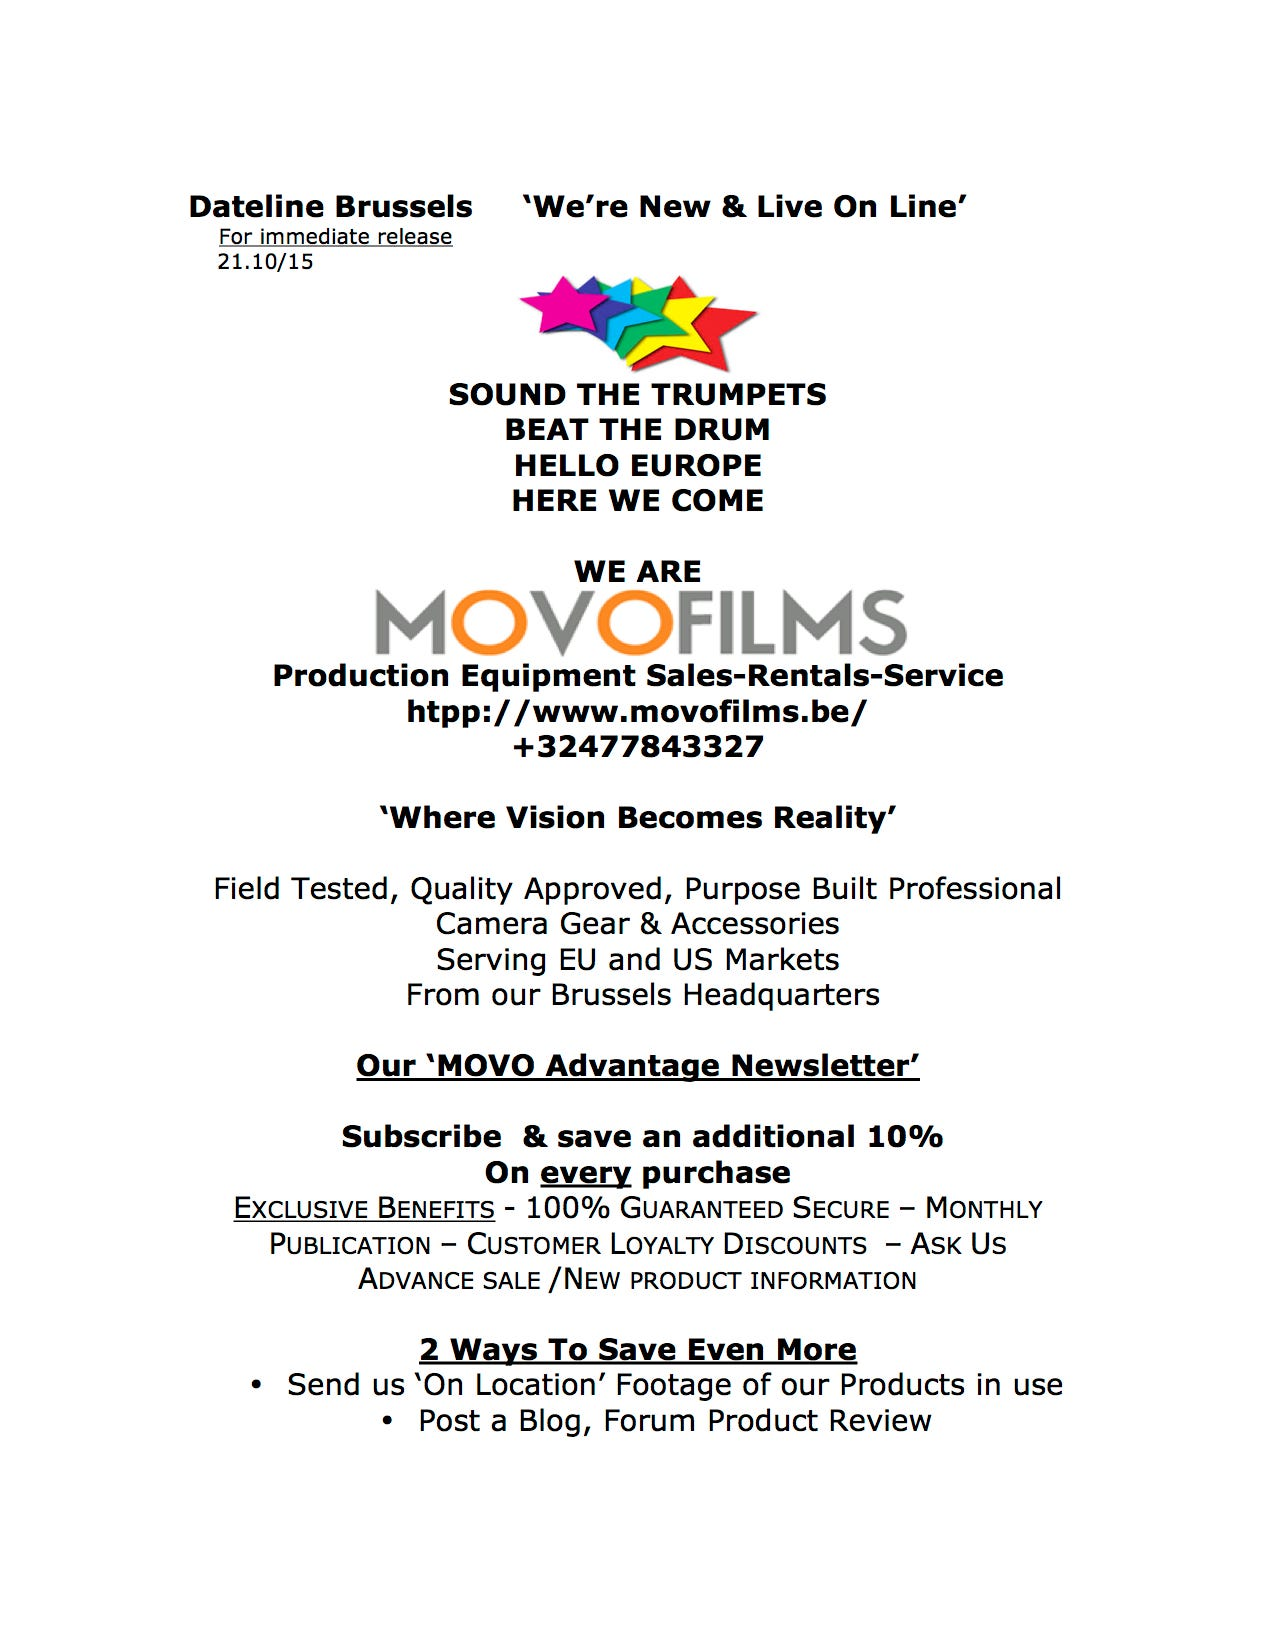 MovoFilms Press Release (edited)